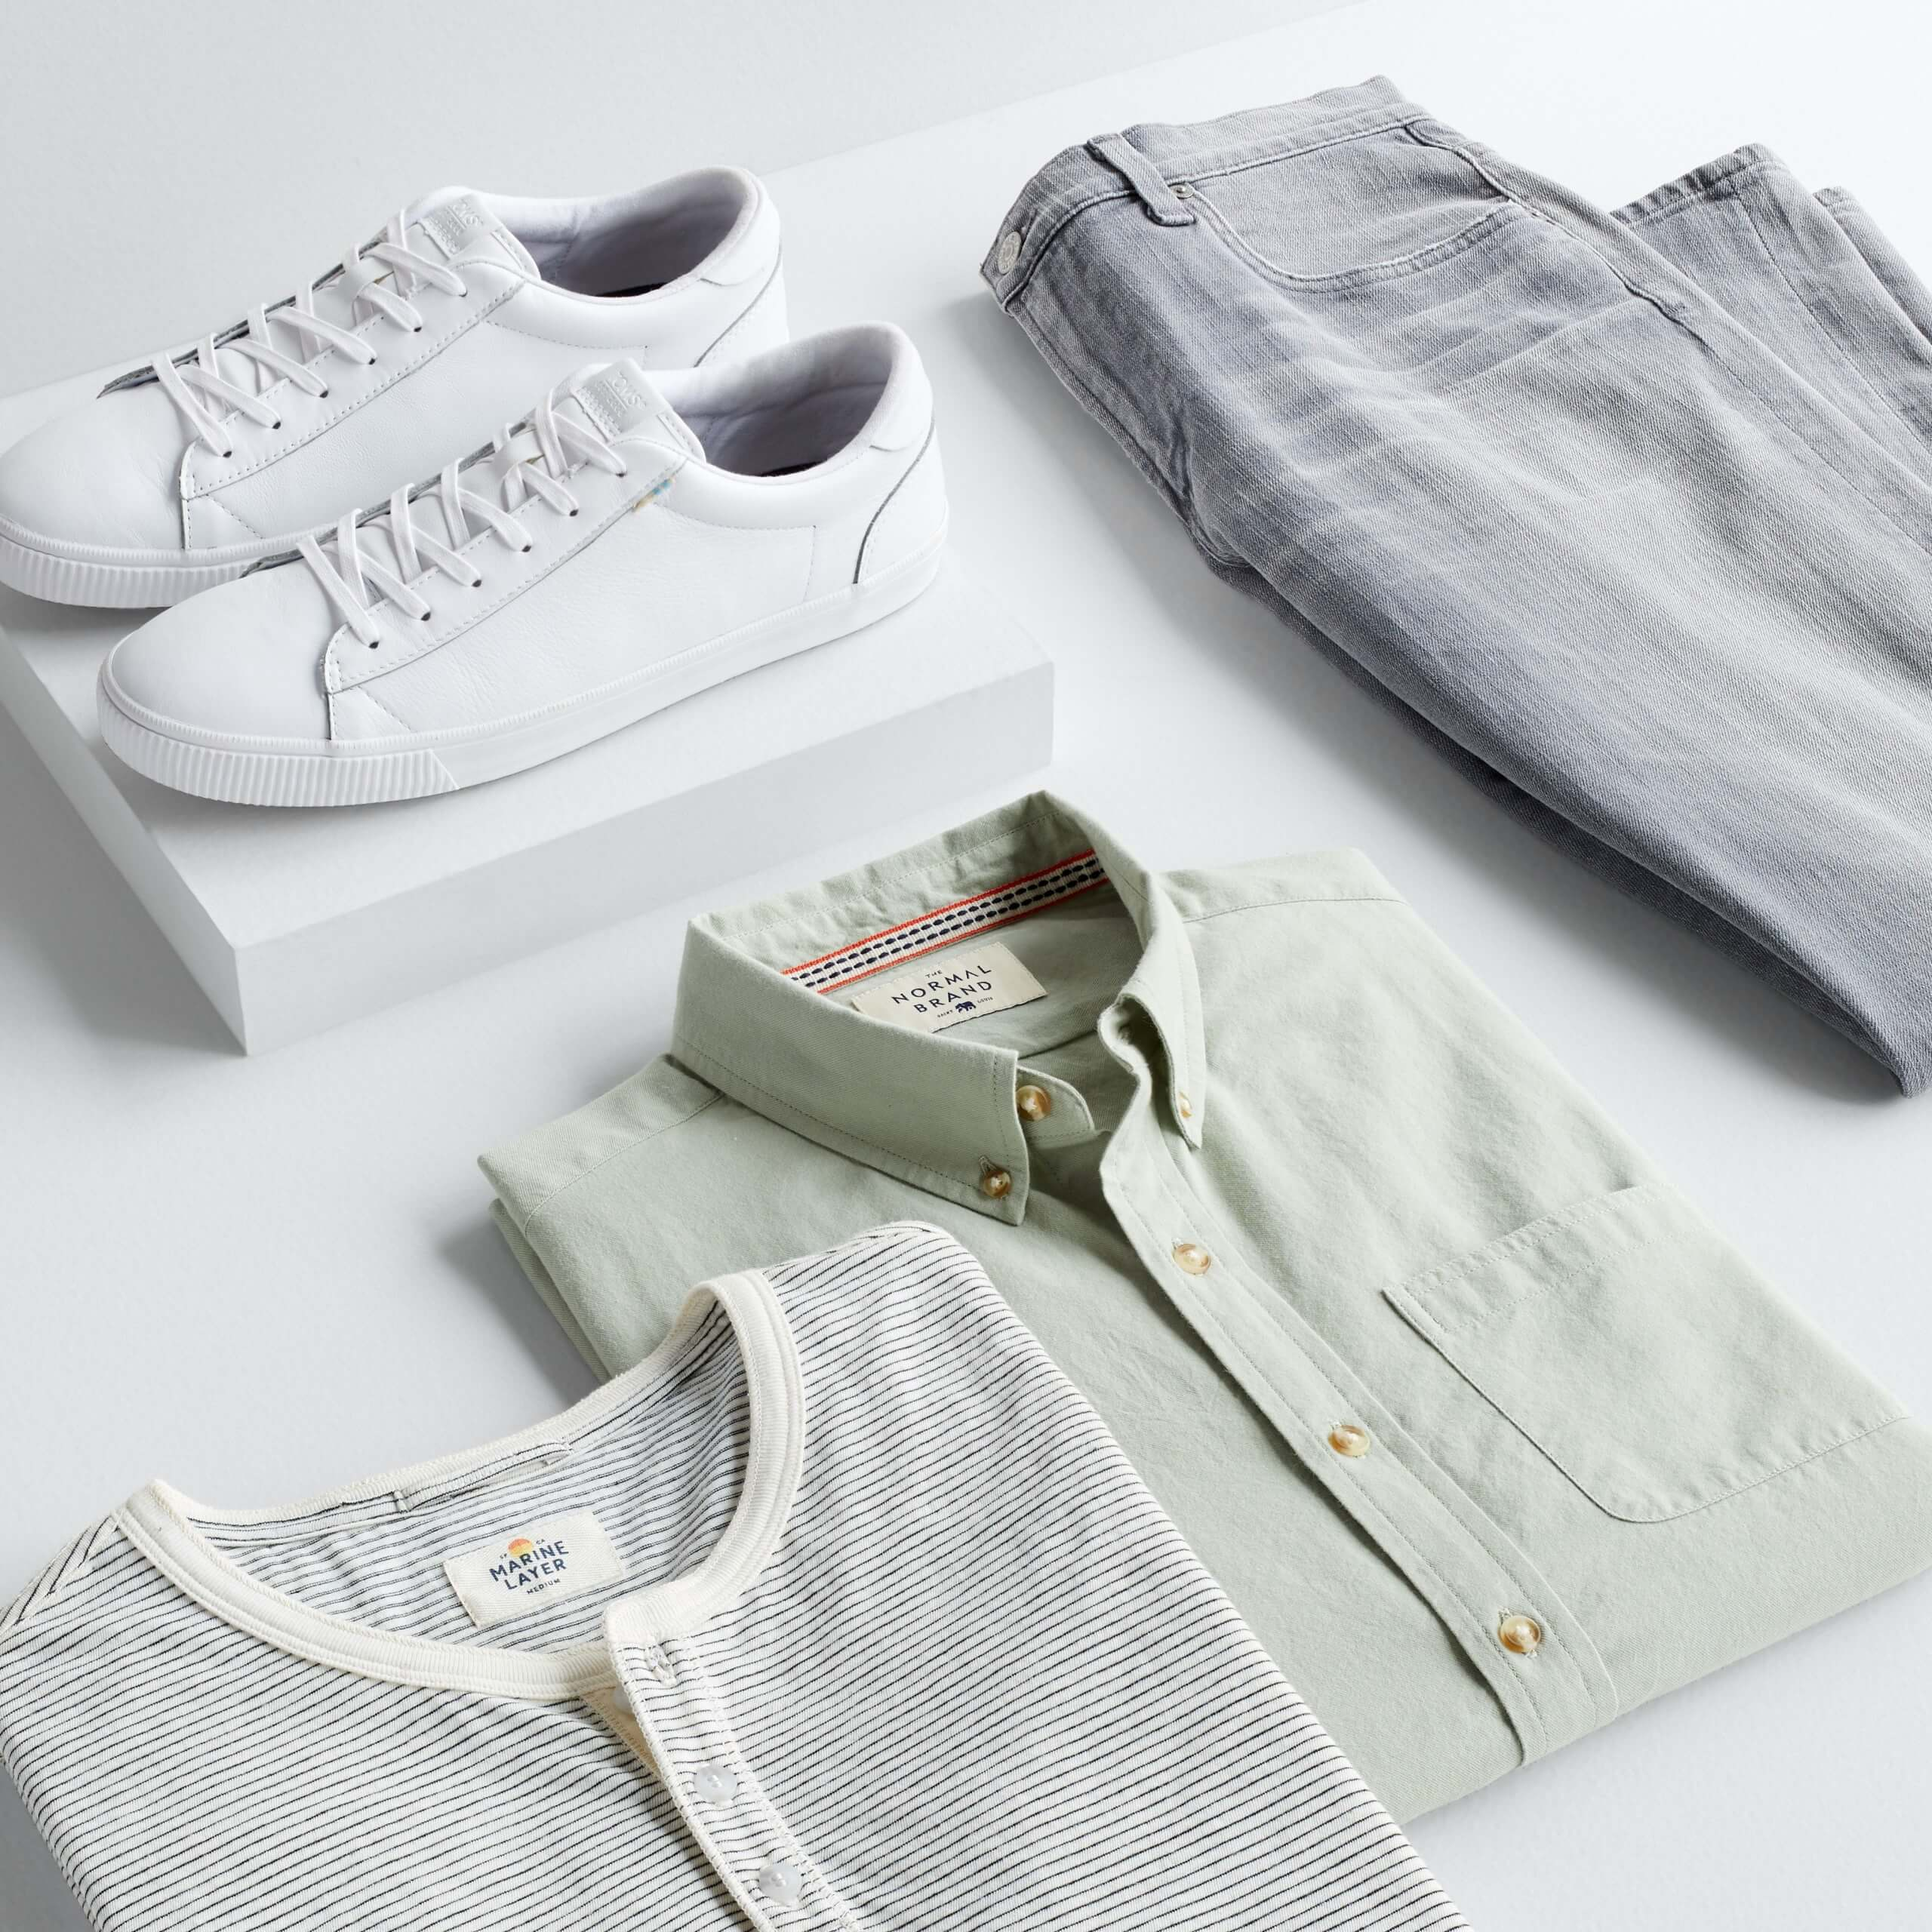 Stitch Fix Men's outfit laydown featuring white and grey striped henley shirt, sage green long sleeve button-down shirt and grey jeans next to white sneakers on a white block.